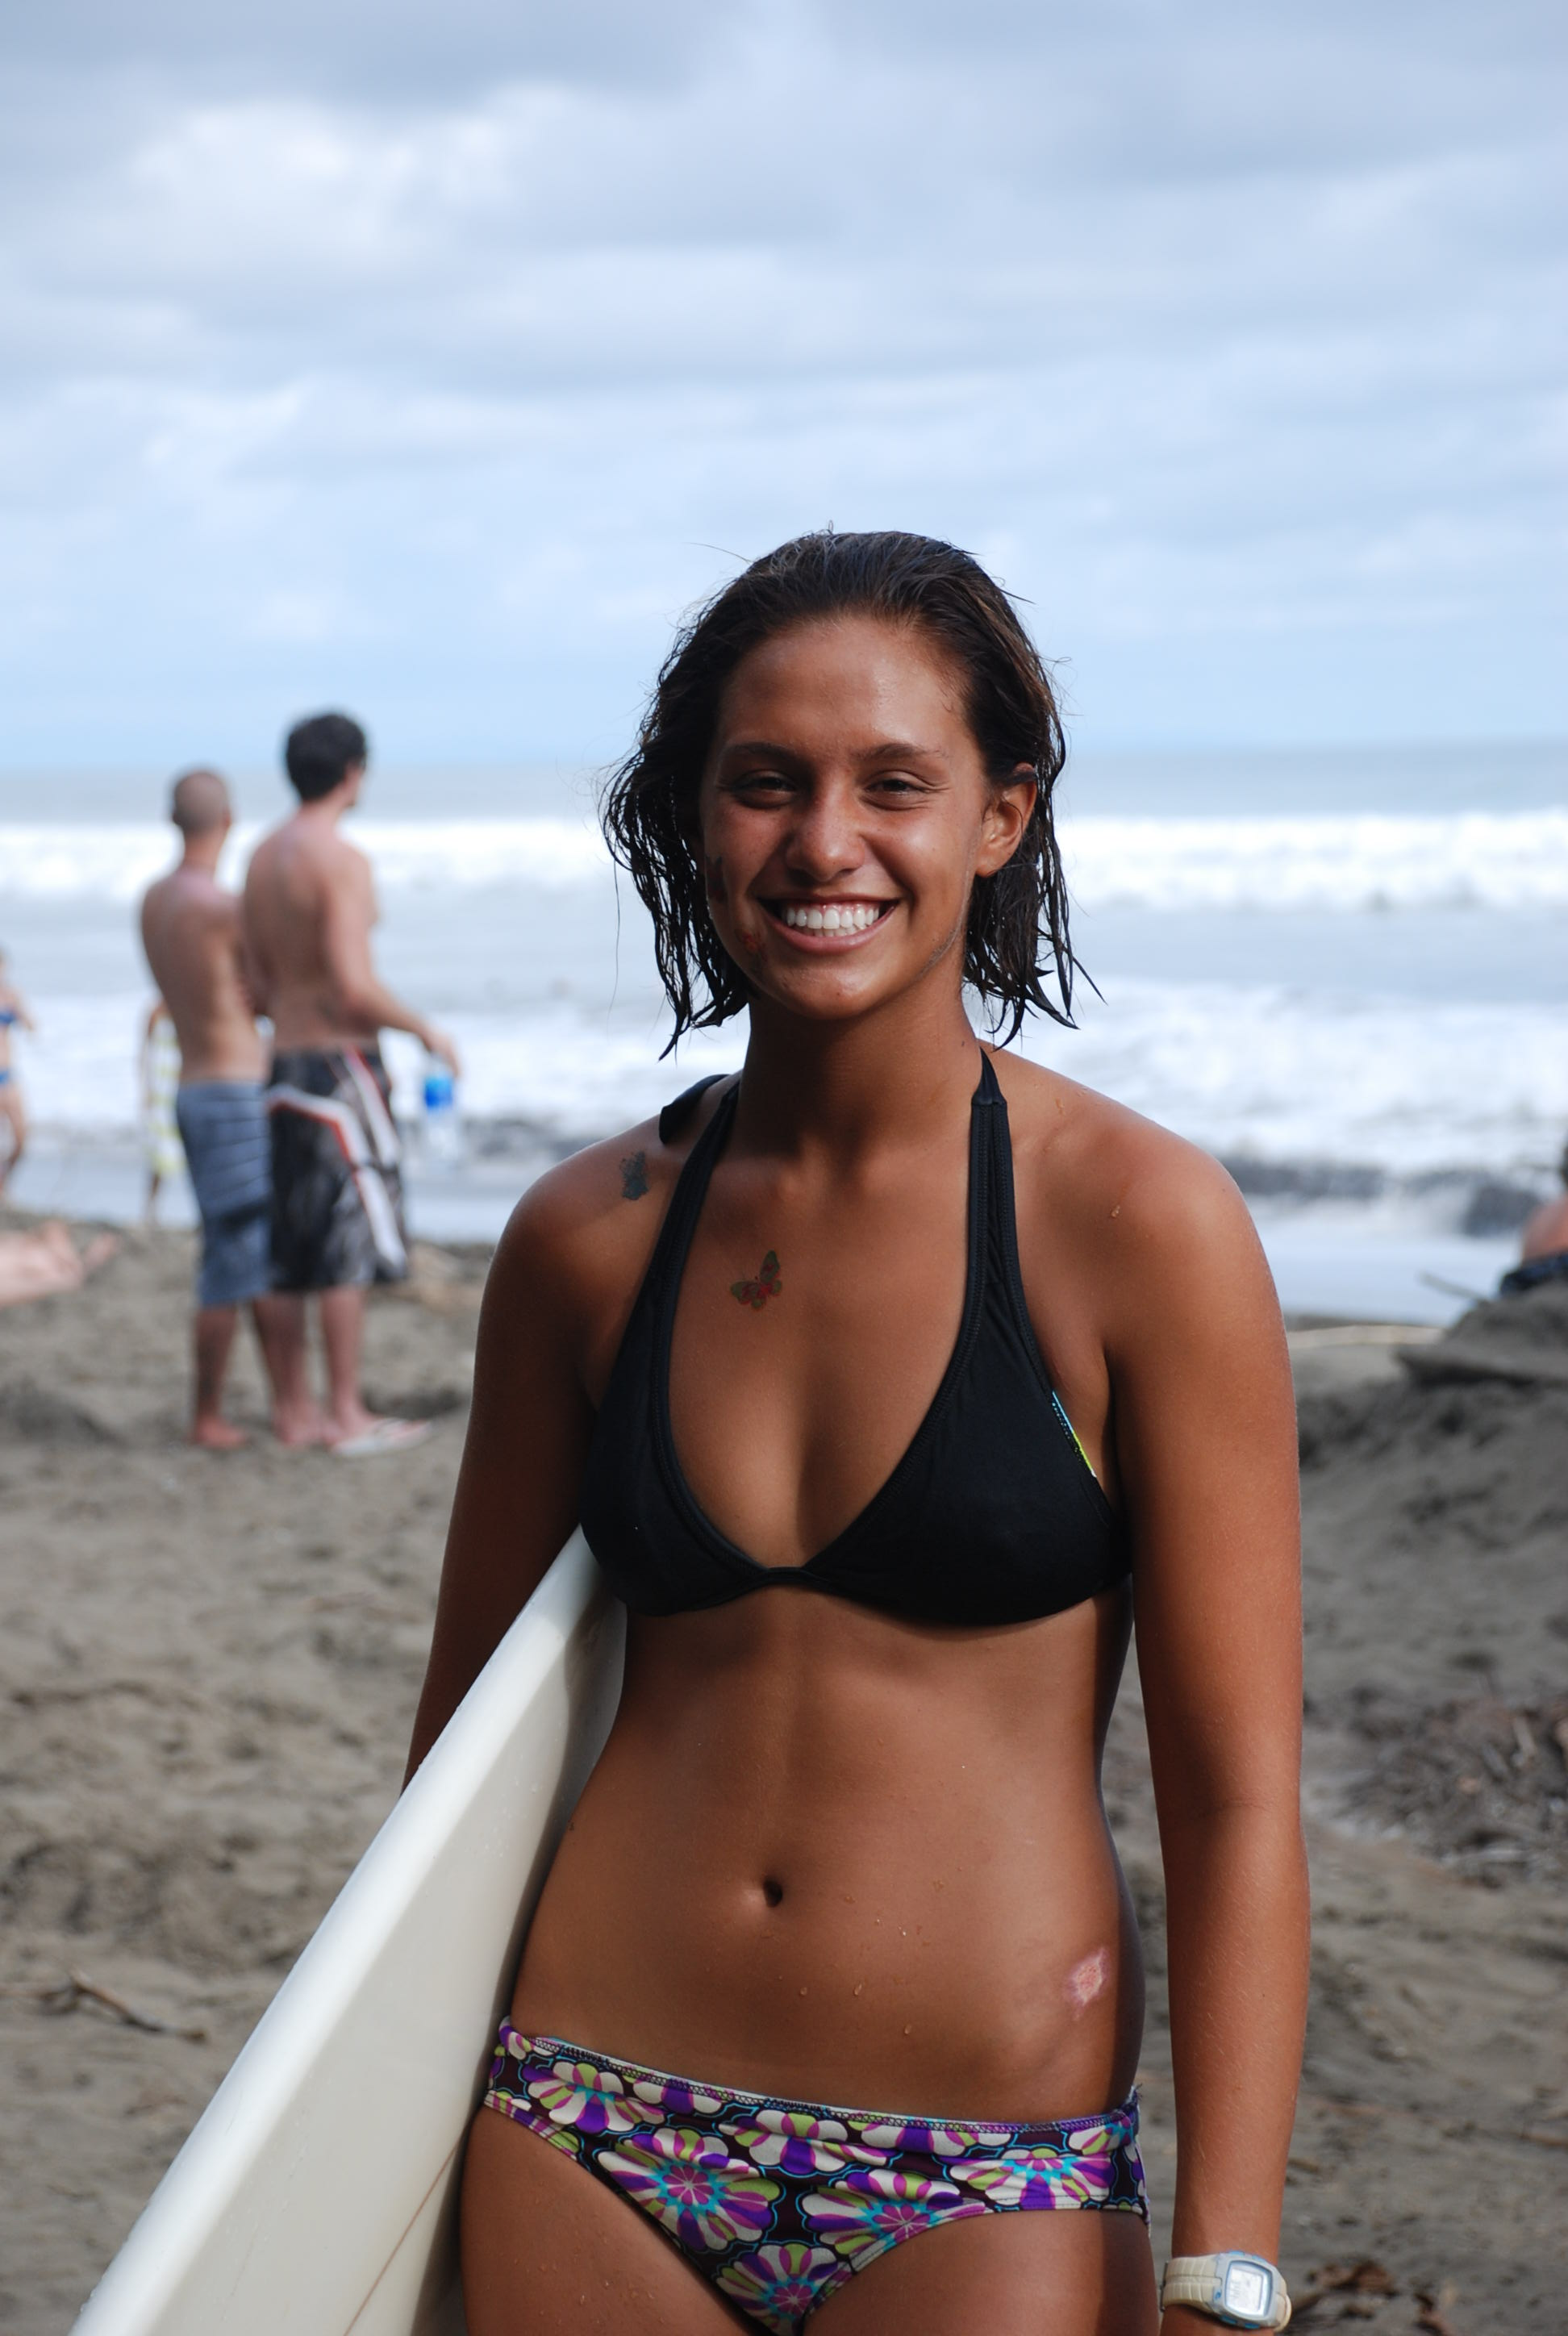 costa rica female surfer dominical